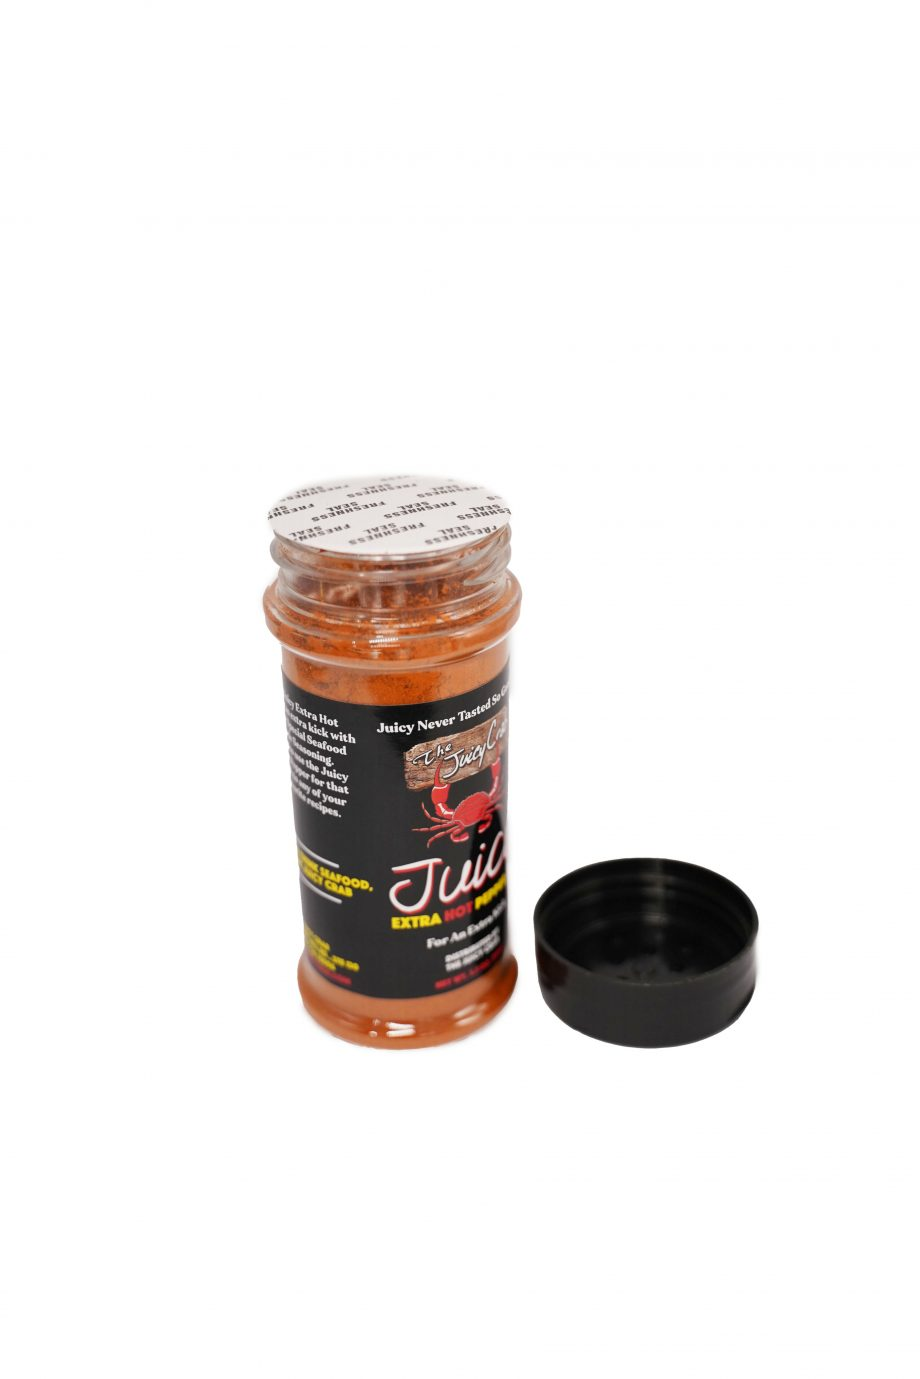 juicy sauce extra hot pepper by the juicy crab